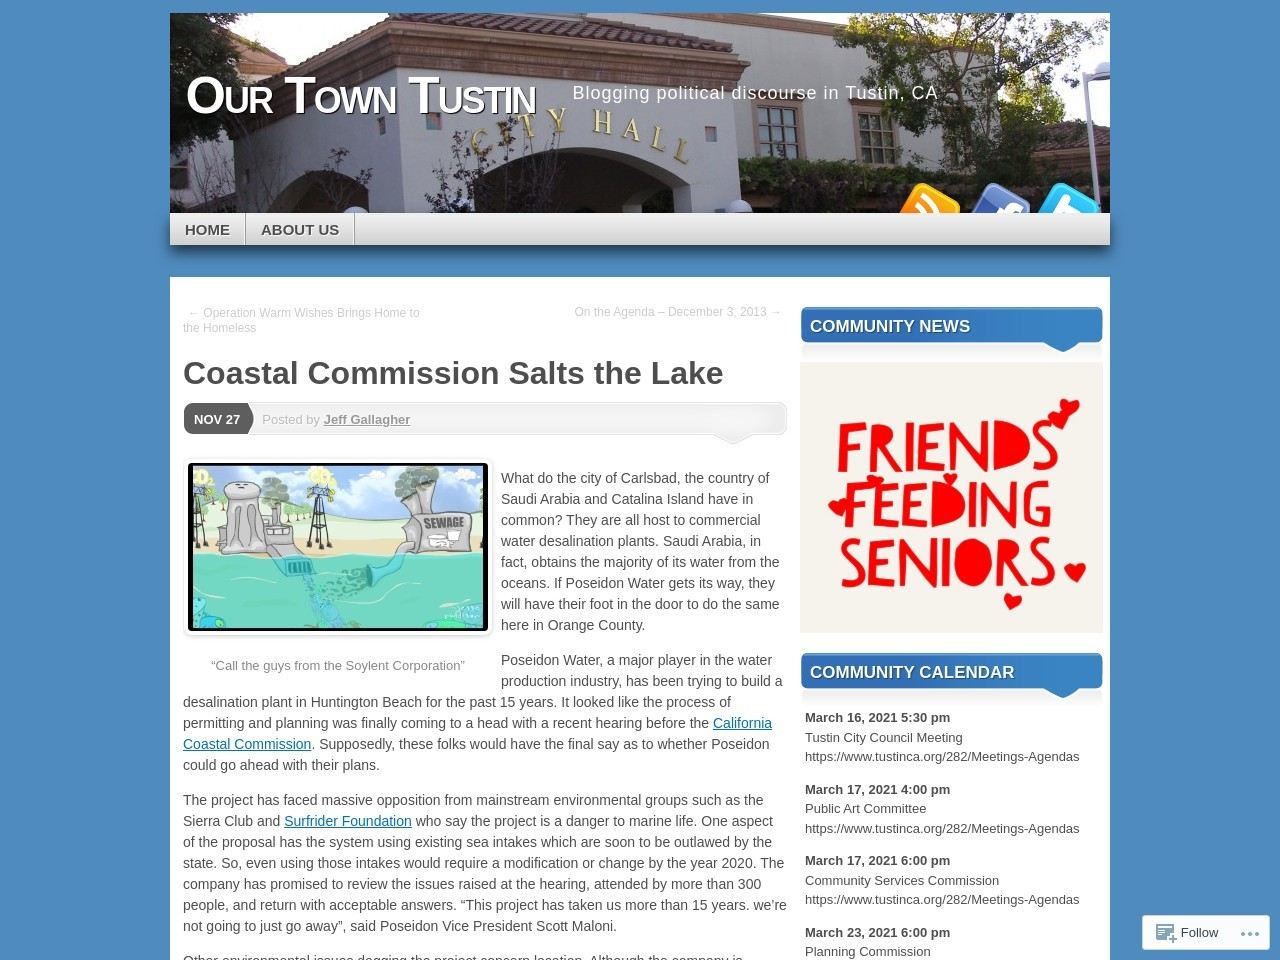 Coastal Commission Salts the Lake | Our Town Tustin